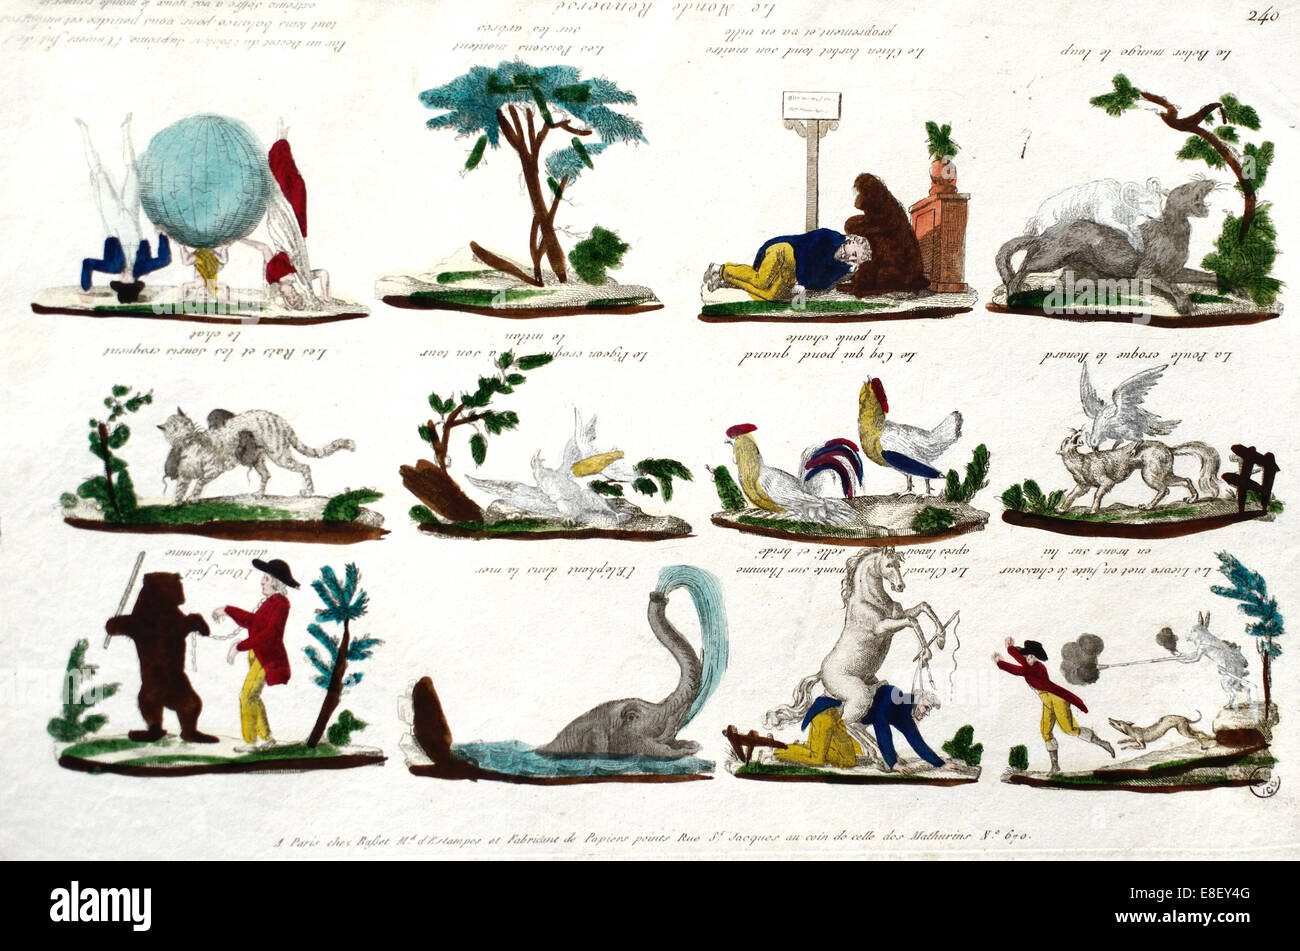 The Upside Down World a Surreal or Satirical c18/19th Engraving of a Topsy-Turvy World - Stock Image